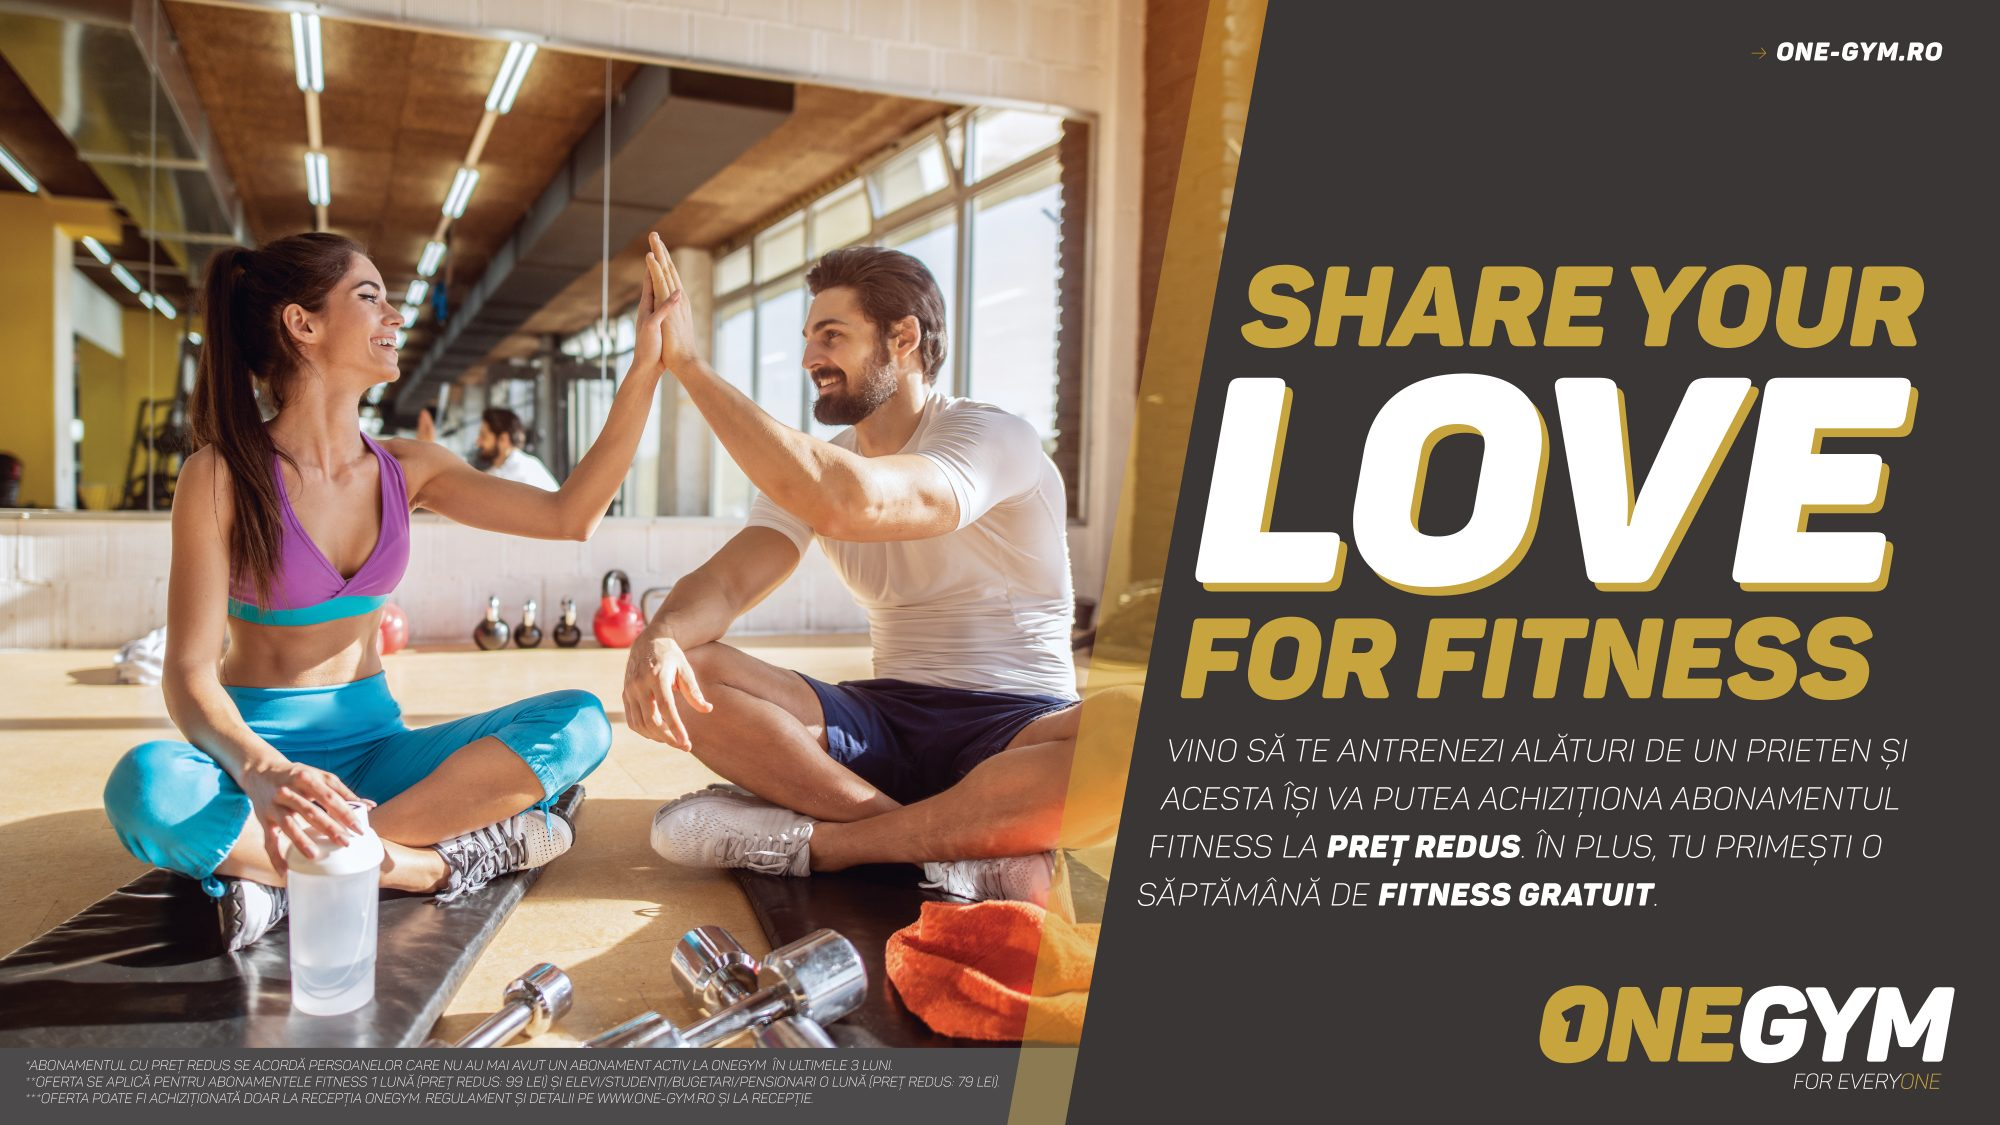 SHARE YOUR LOVE FOR FITNESS